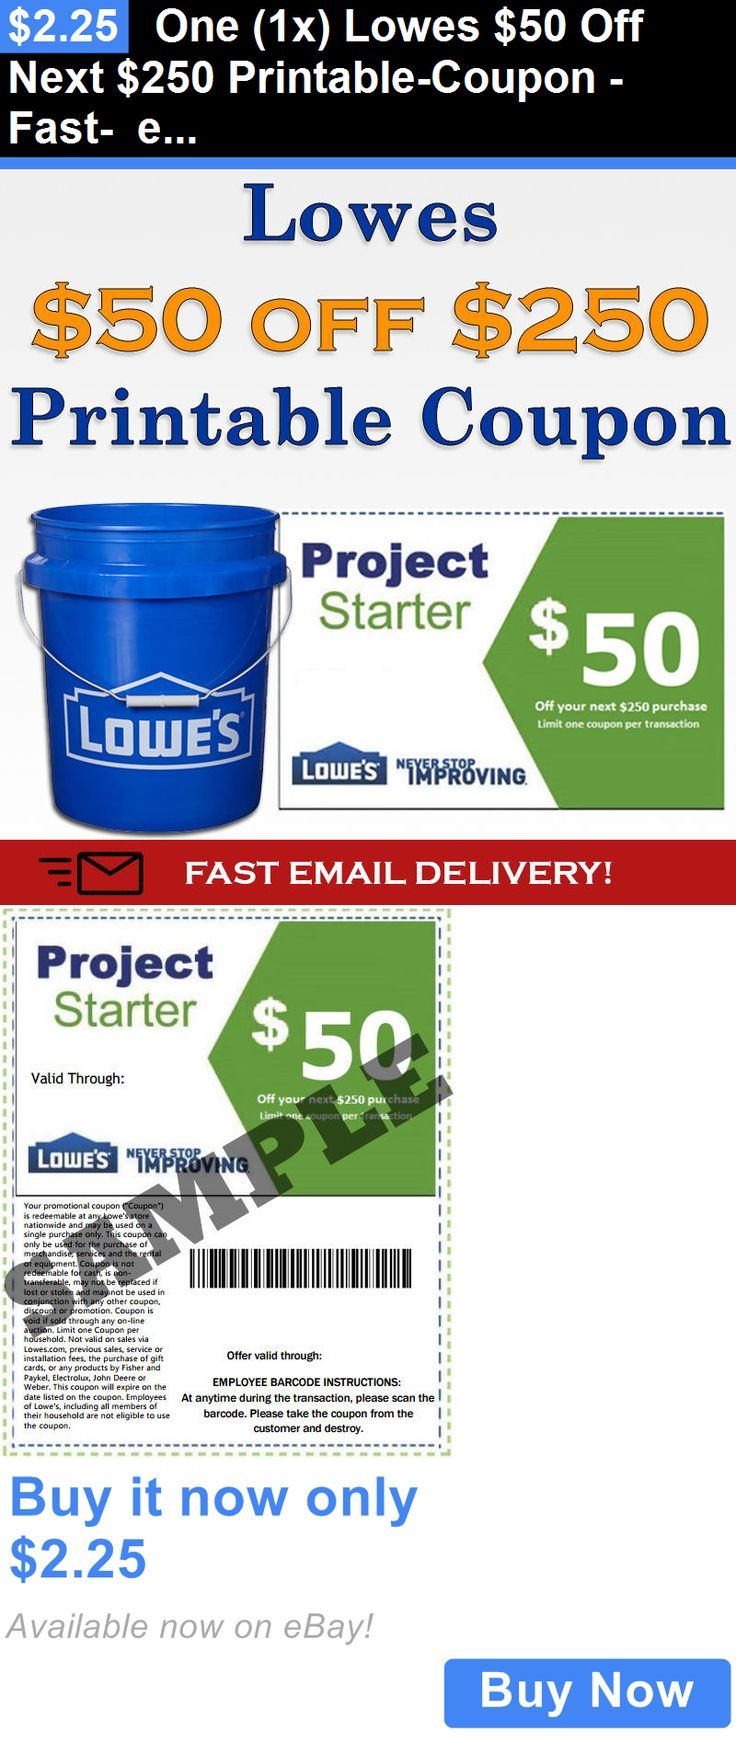 Lowes 15 off 50 coupon code generator